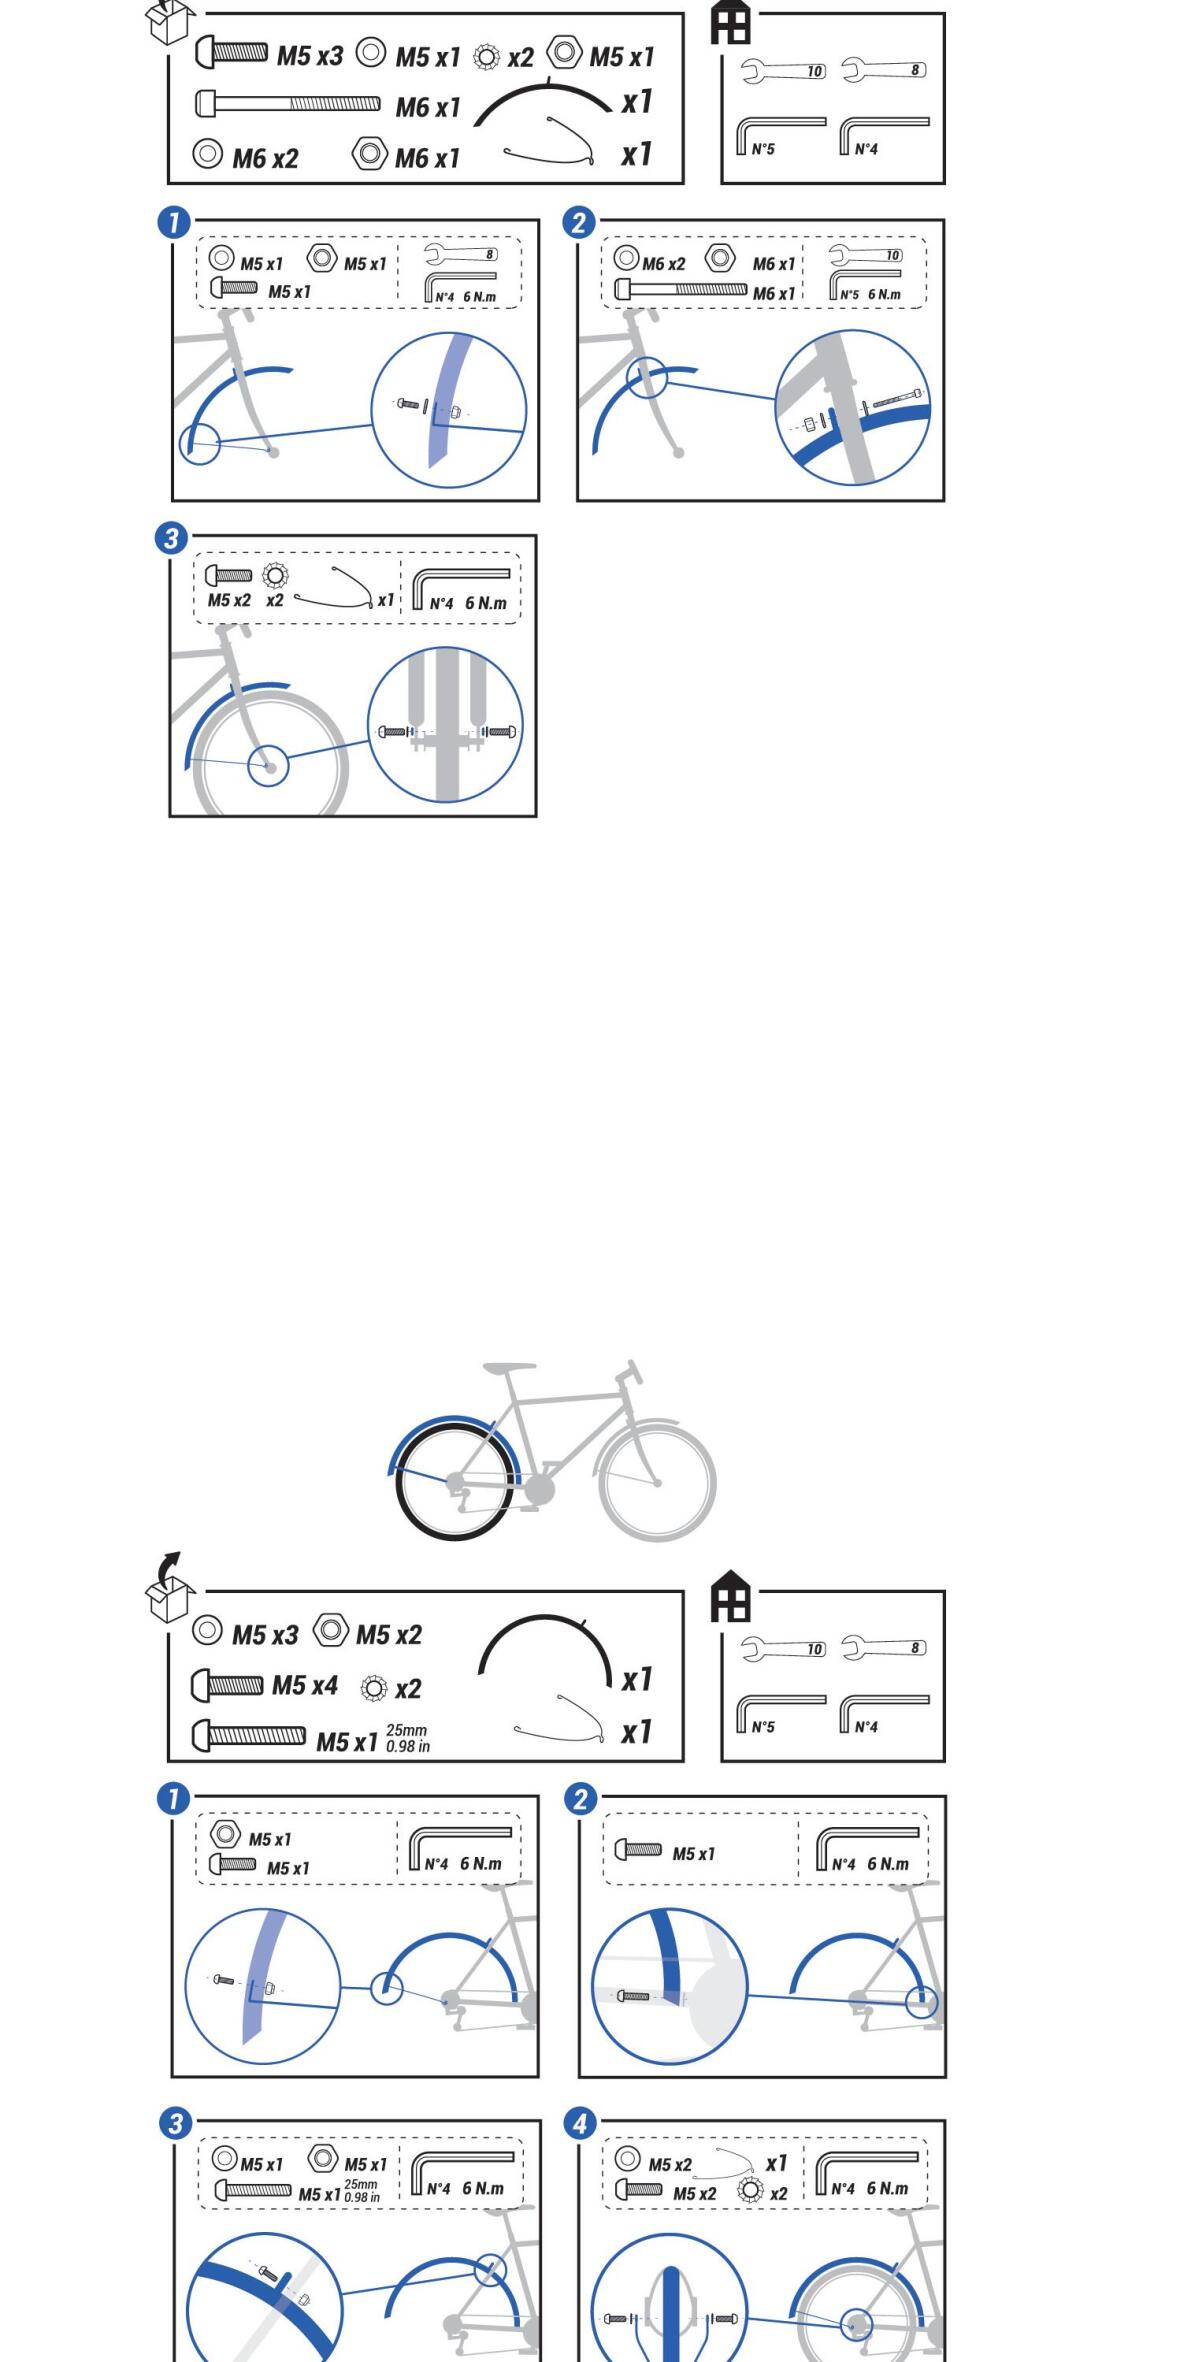 how-to-fit-mudguards-hybrid-bike